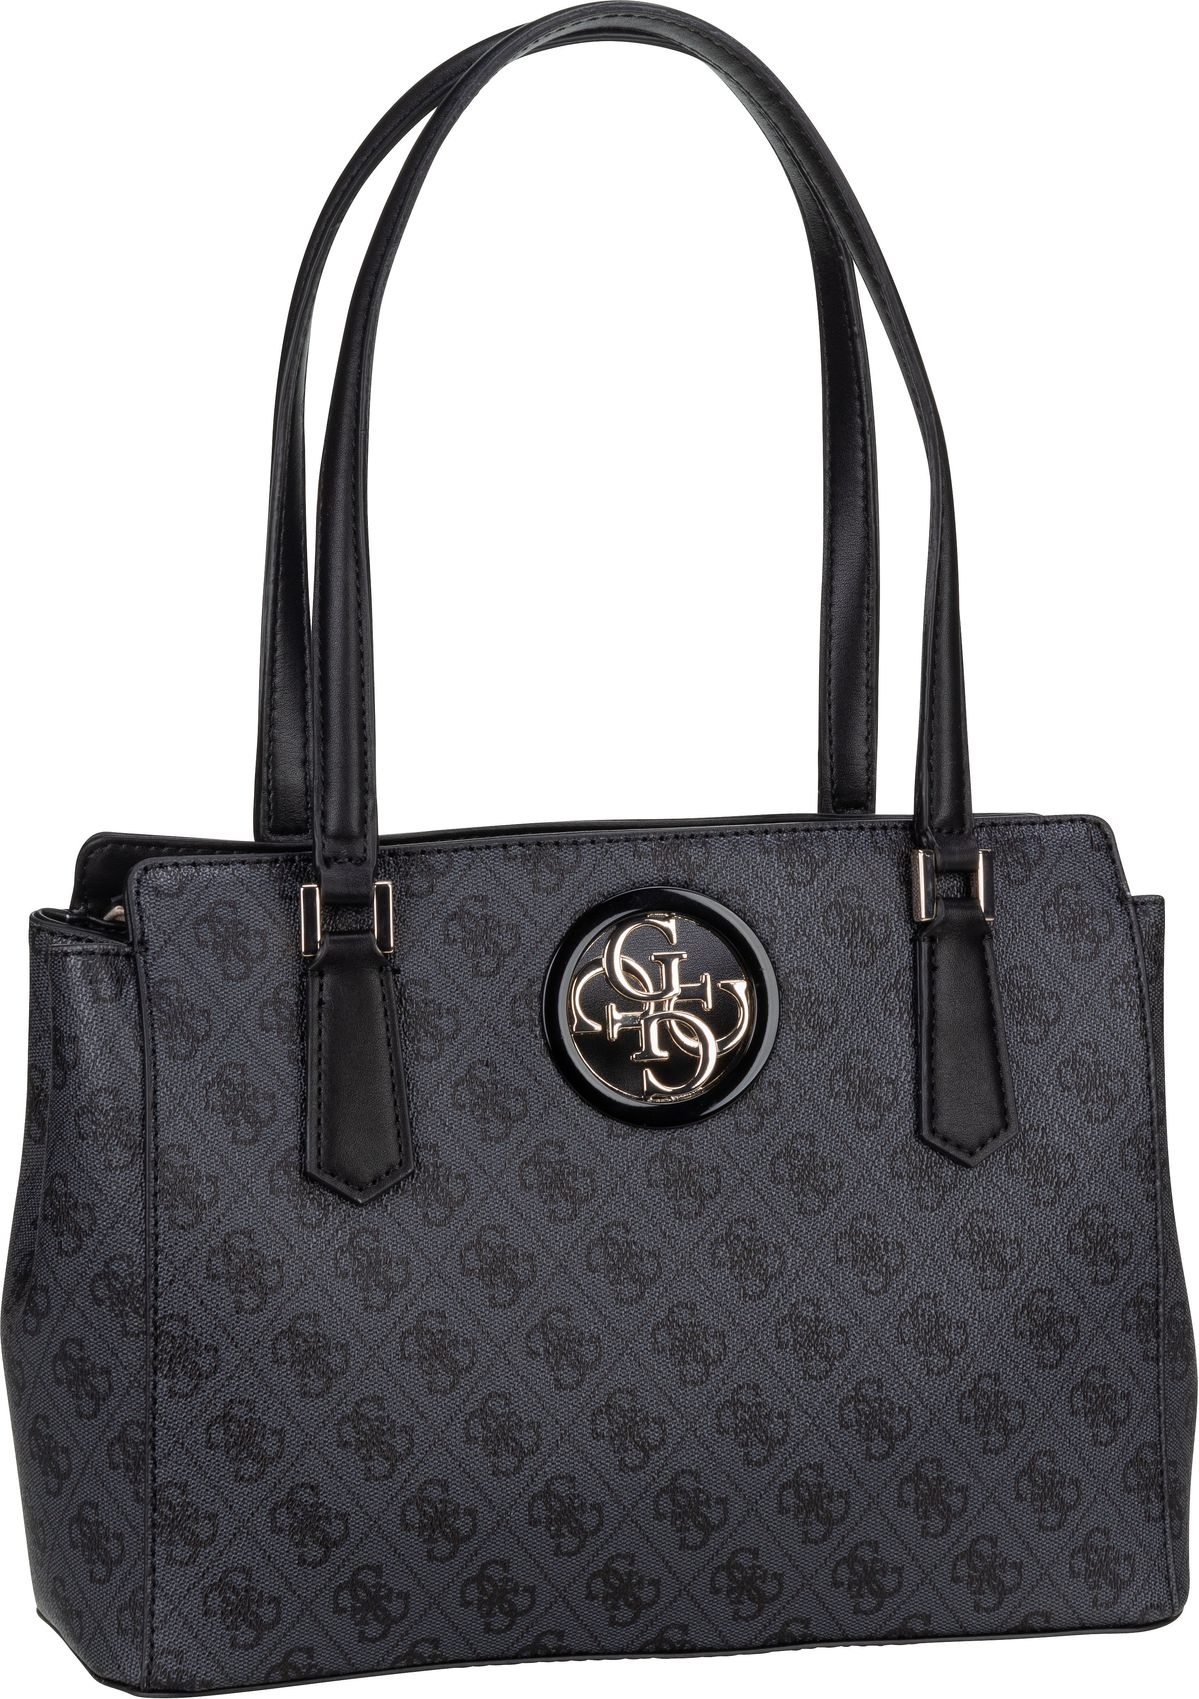 Handtasche Open Road Luxury Satchel Coal